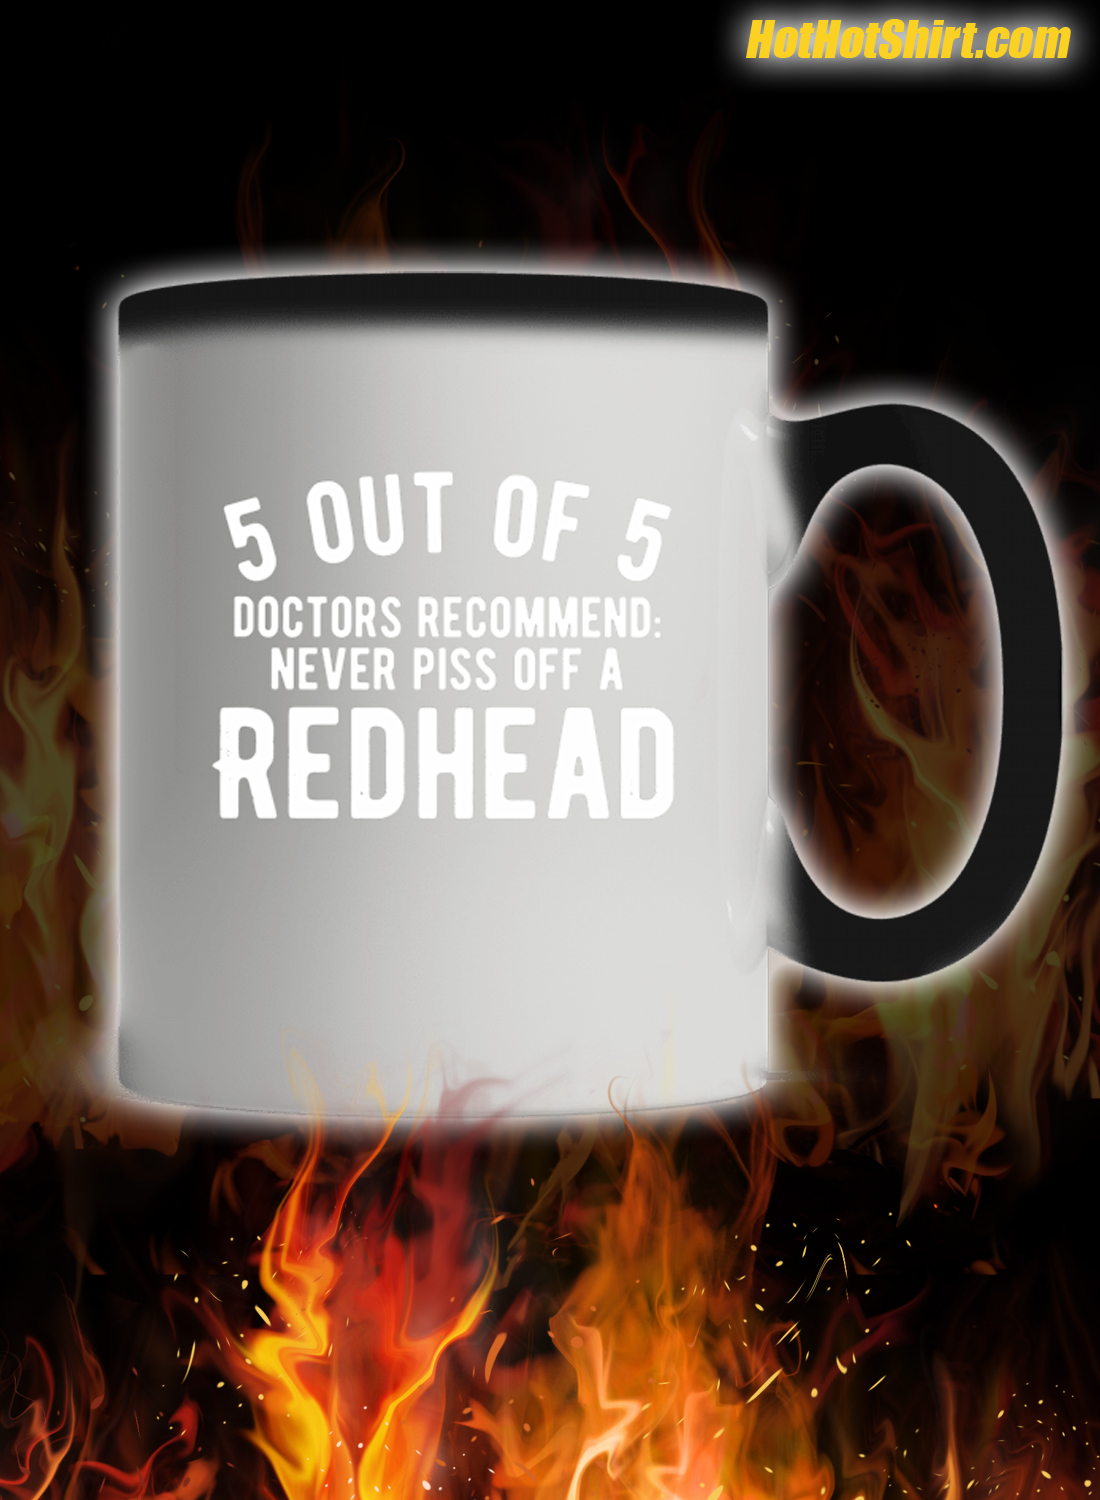 5 Out Of 5 Doctors Recommend Never Piss Off A Redhead Mug 1